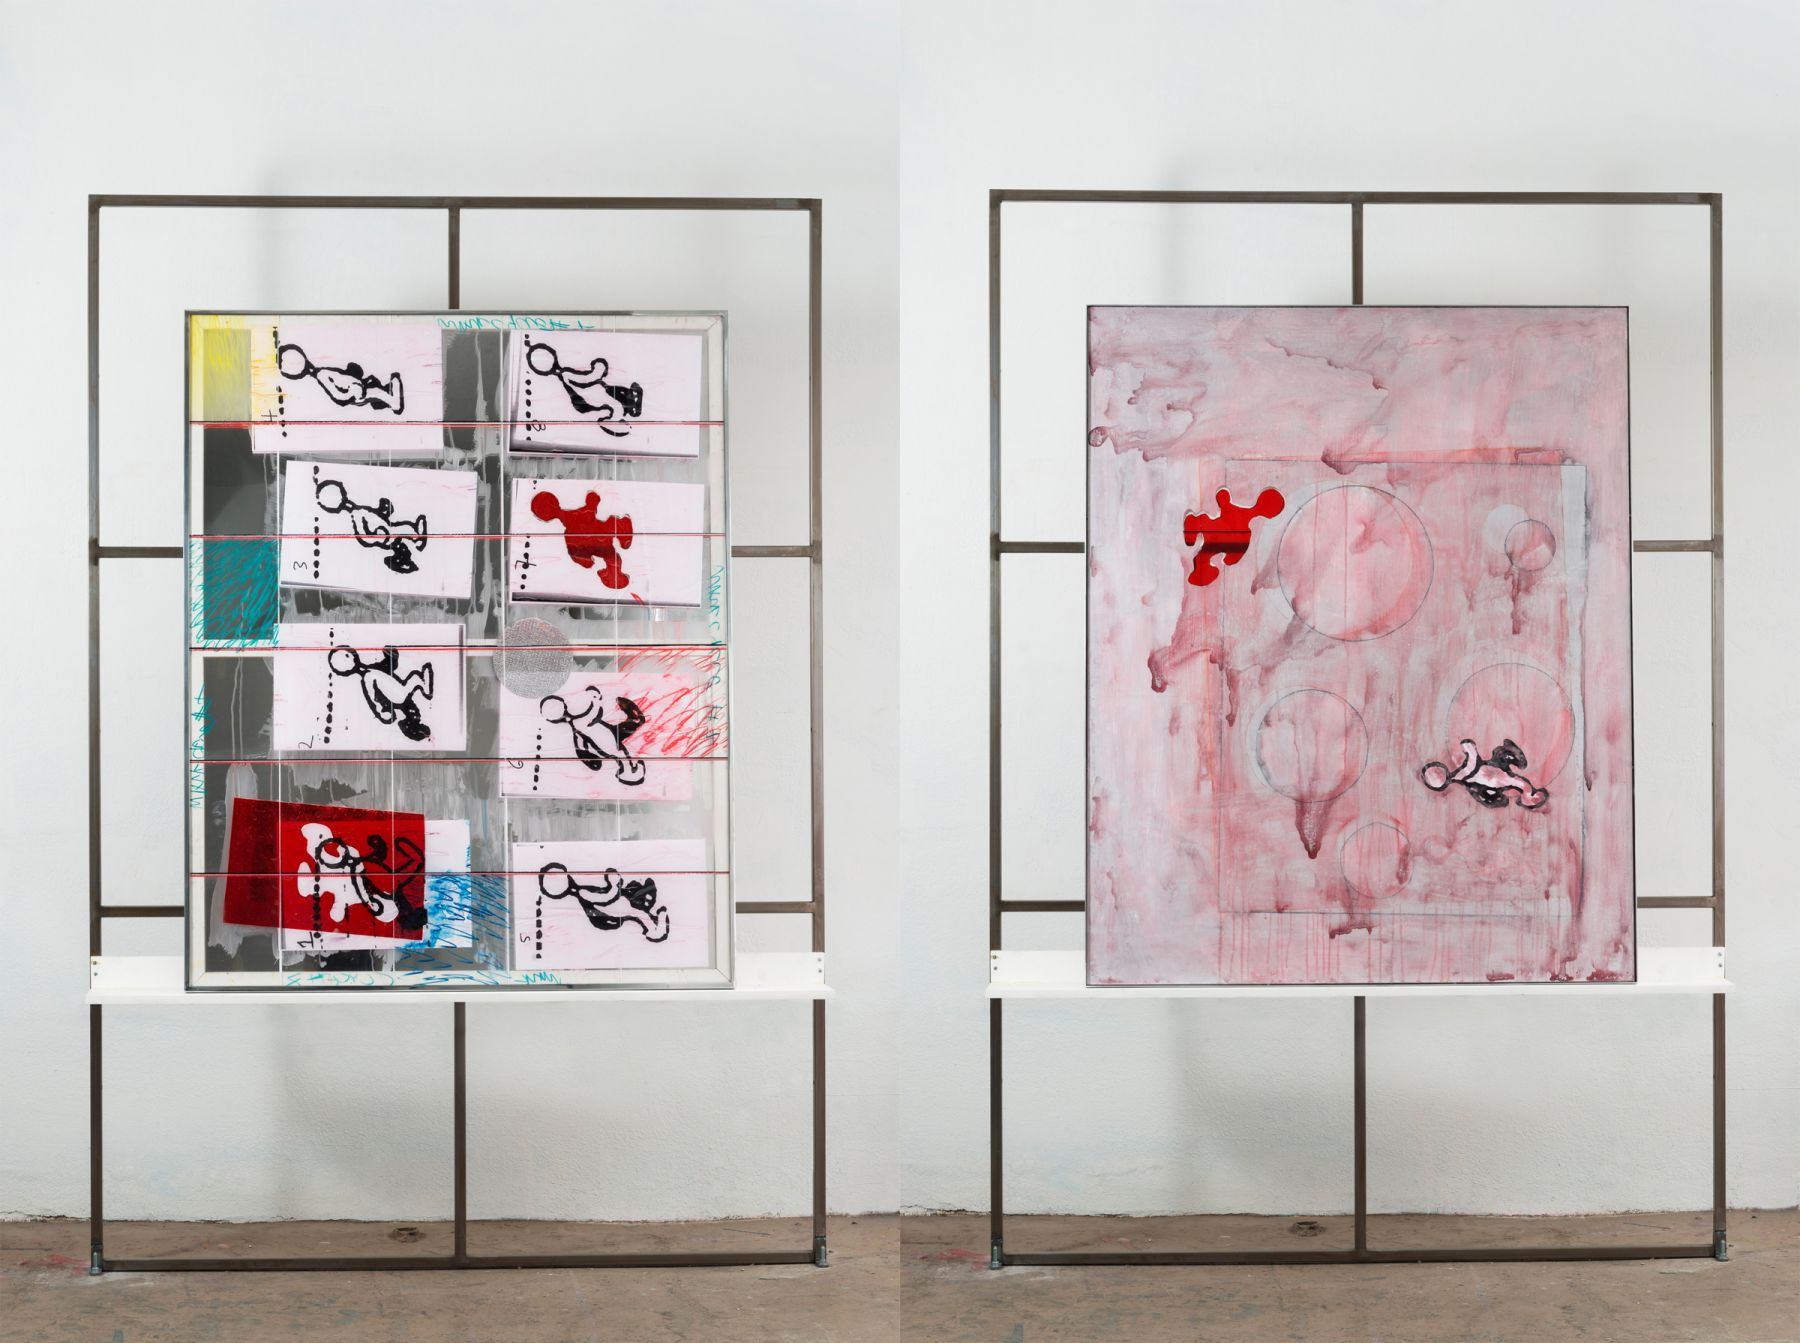 two works in a series by the los angeles based emerging artist dashiell manley